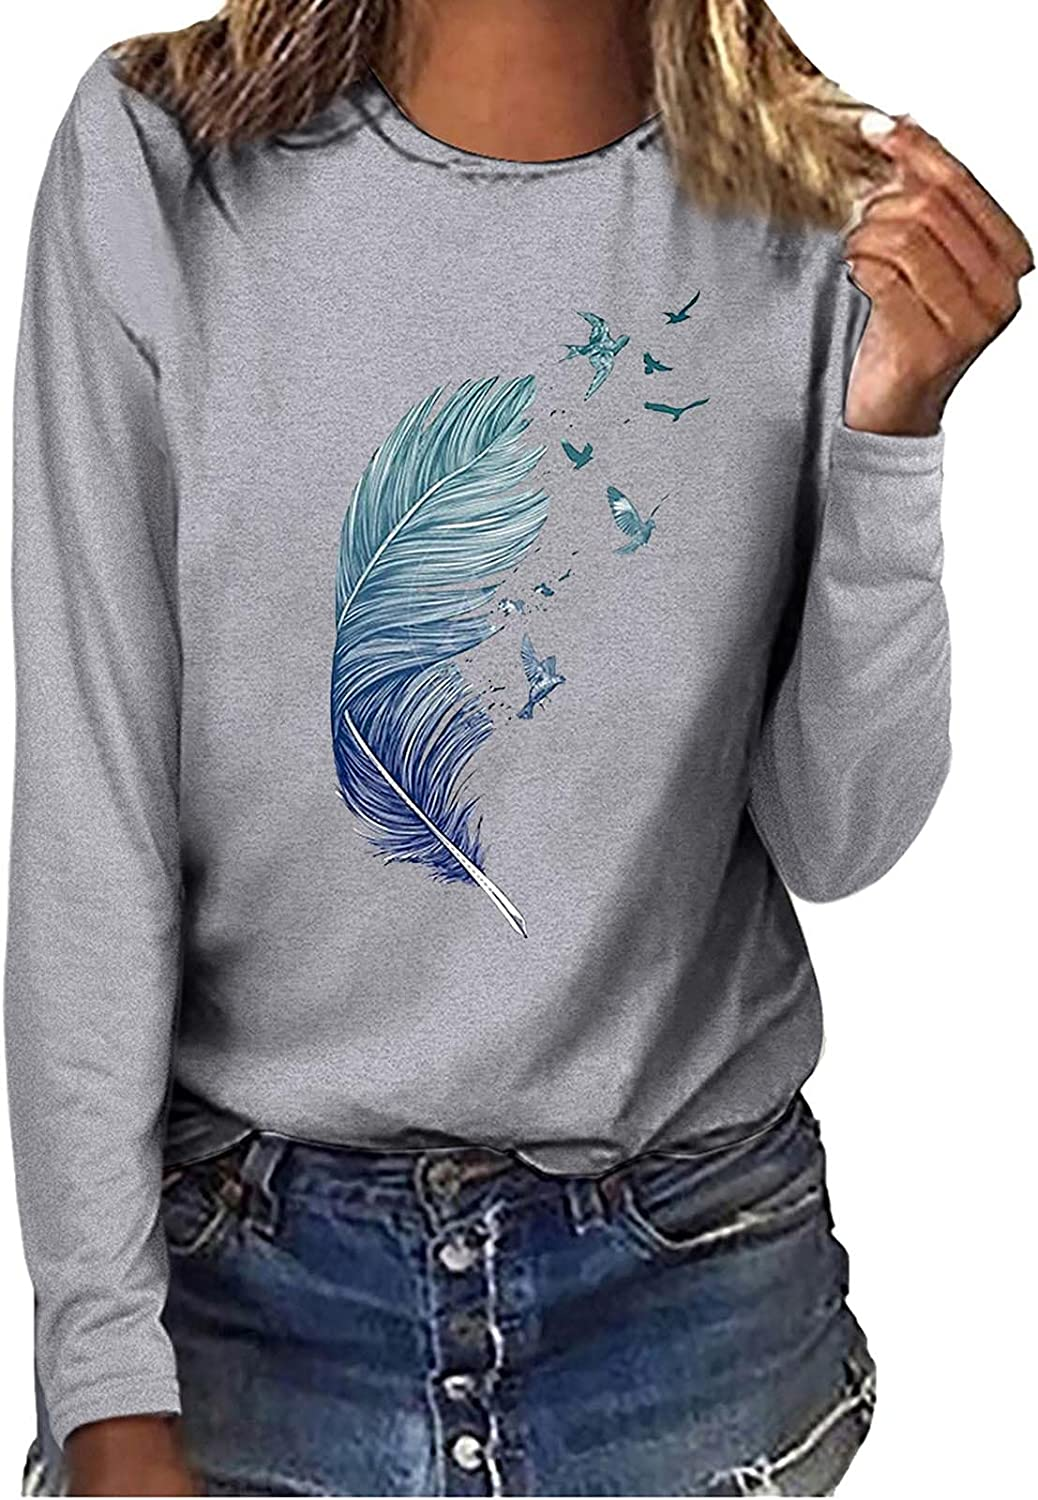 Tops for Women Casual Long Sleeve Graphics Printing Tee Tops Loose Blouse Pullover Tunic Tshirt Tops